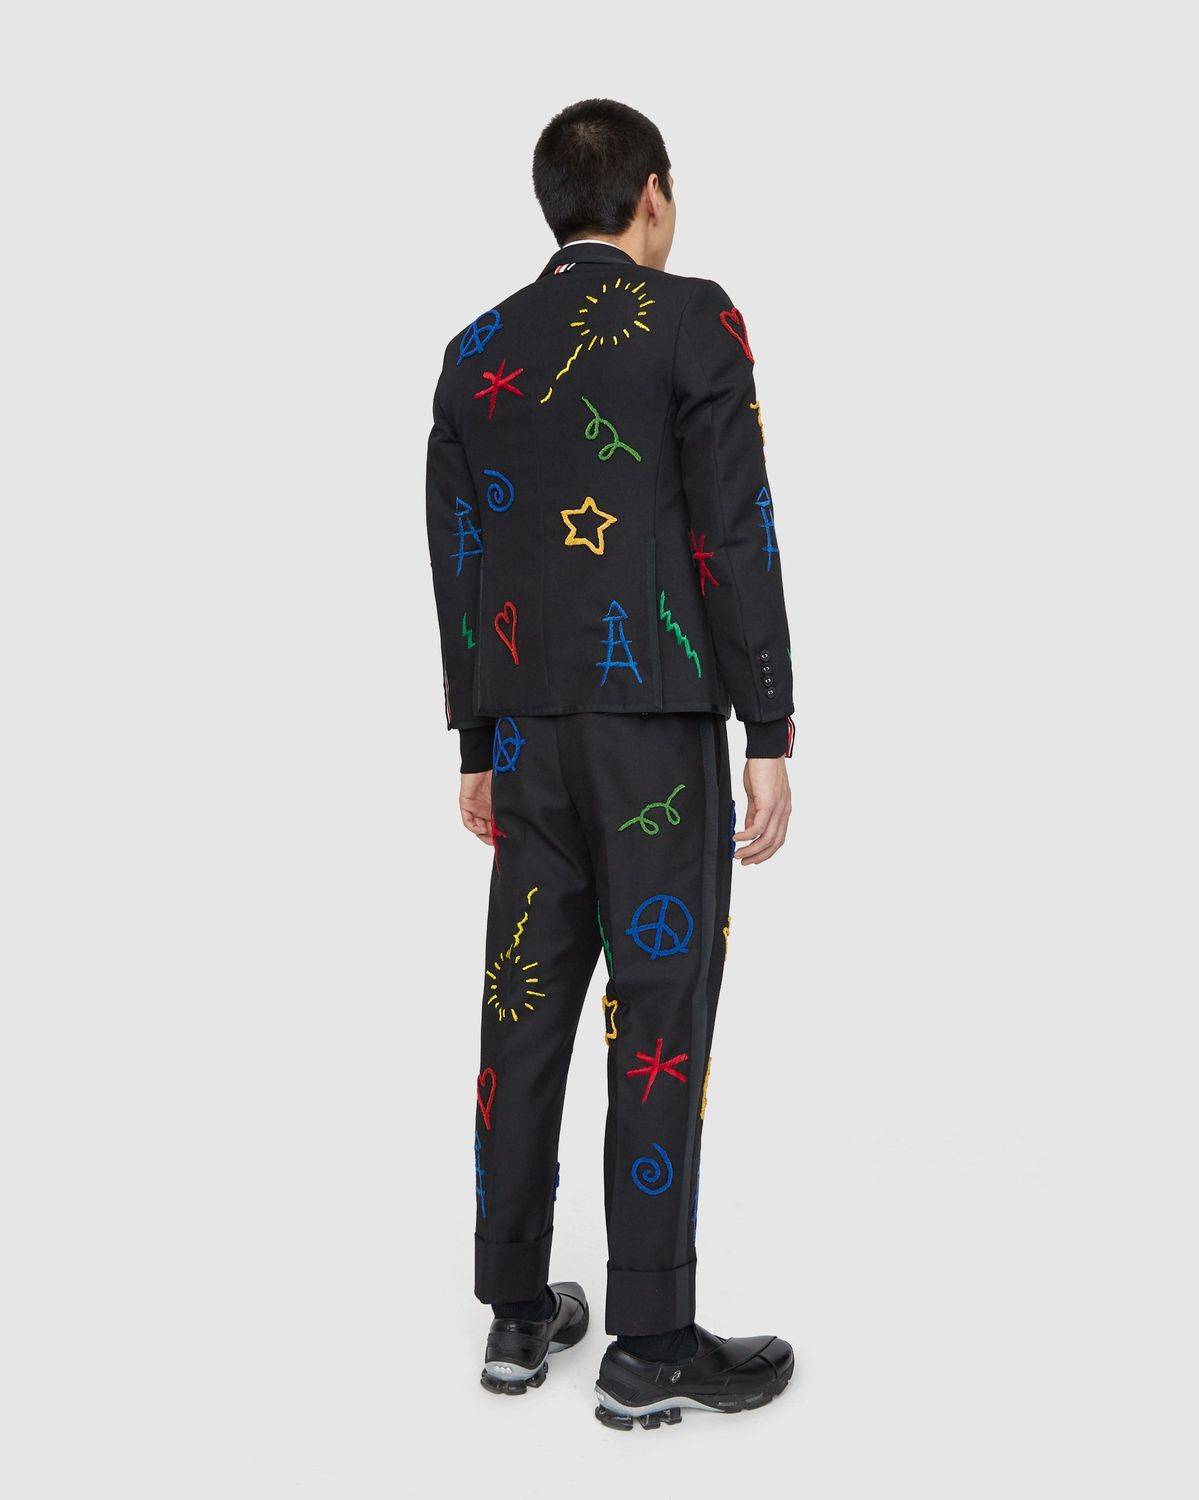 Colette Mon Amour x Thom Browne — Black Embroidered Tux Suit - Image 10